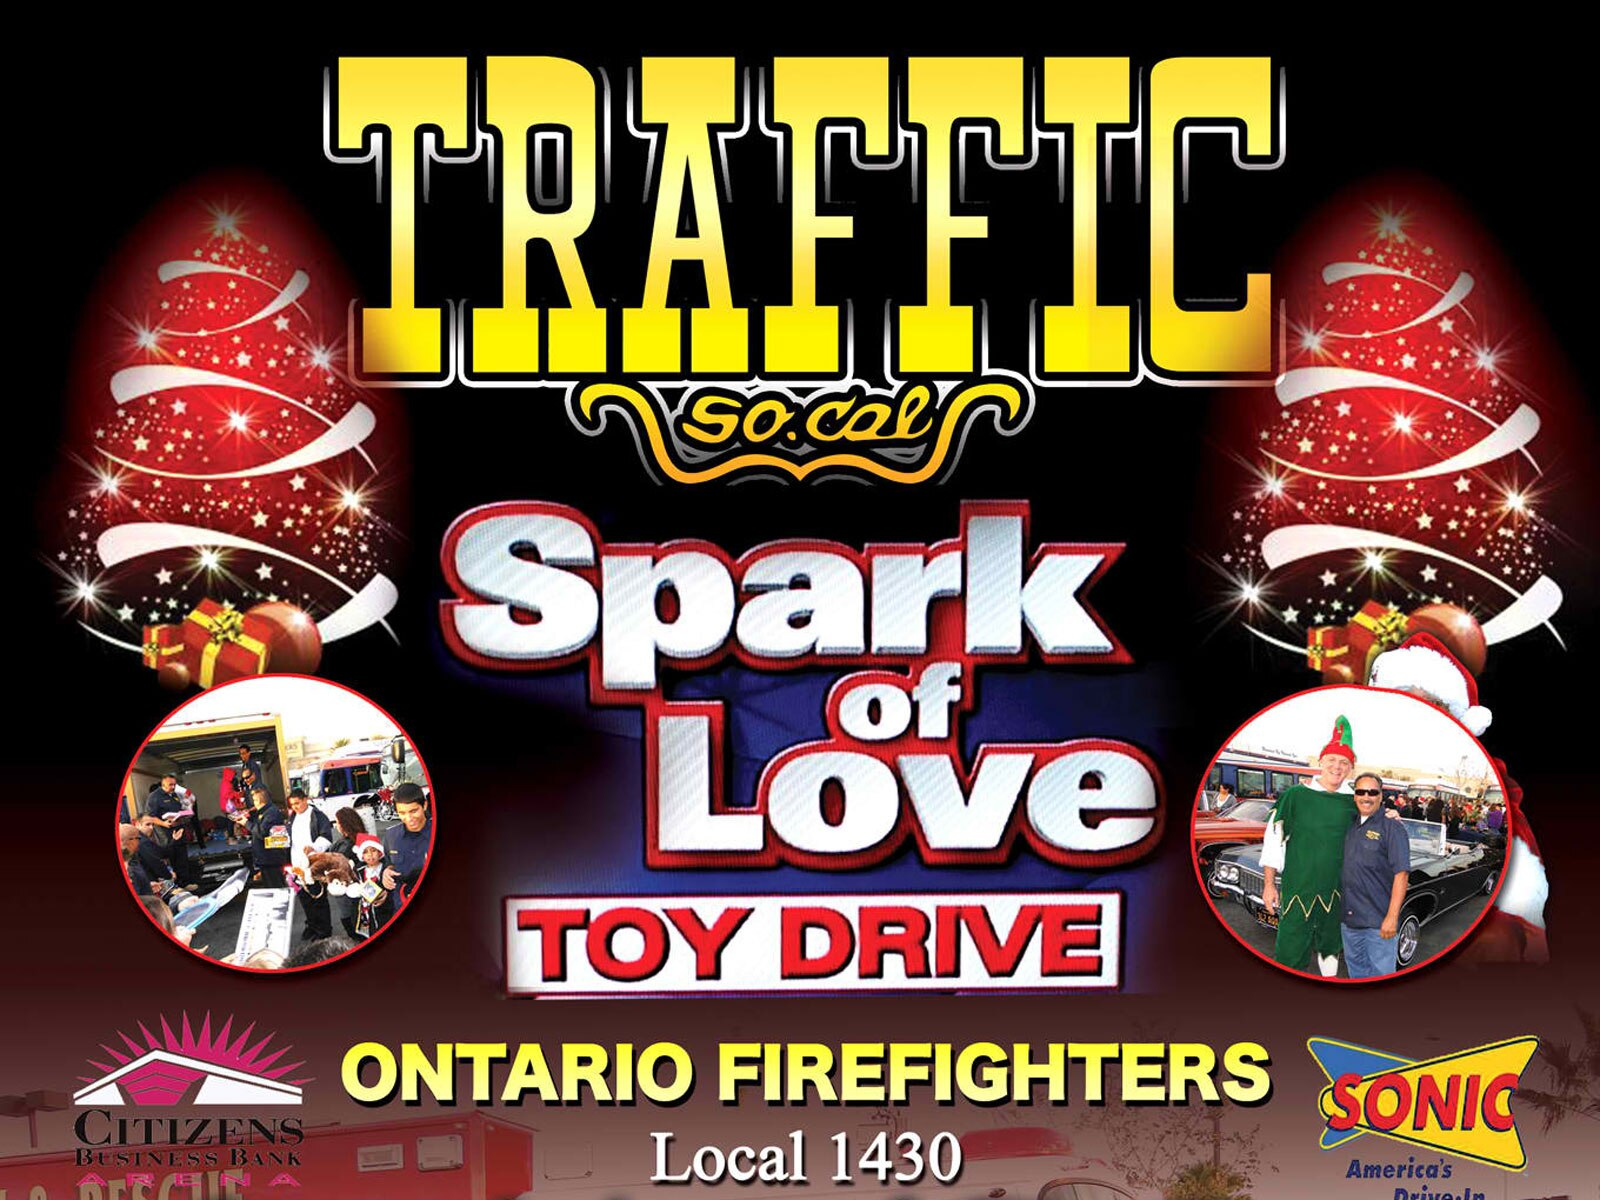 1210-lrmp-01-hp-traffic-so-cal-second-annual-spark-of-love-toy-drive